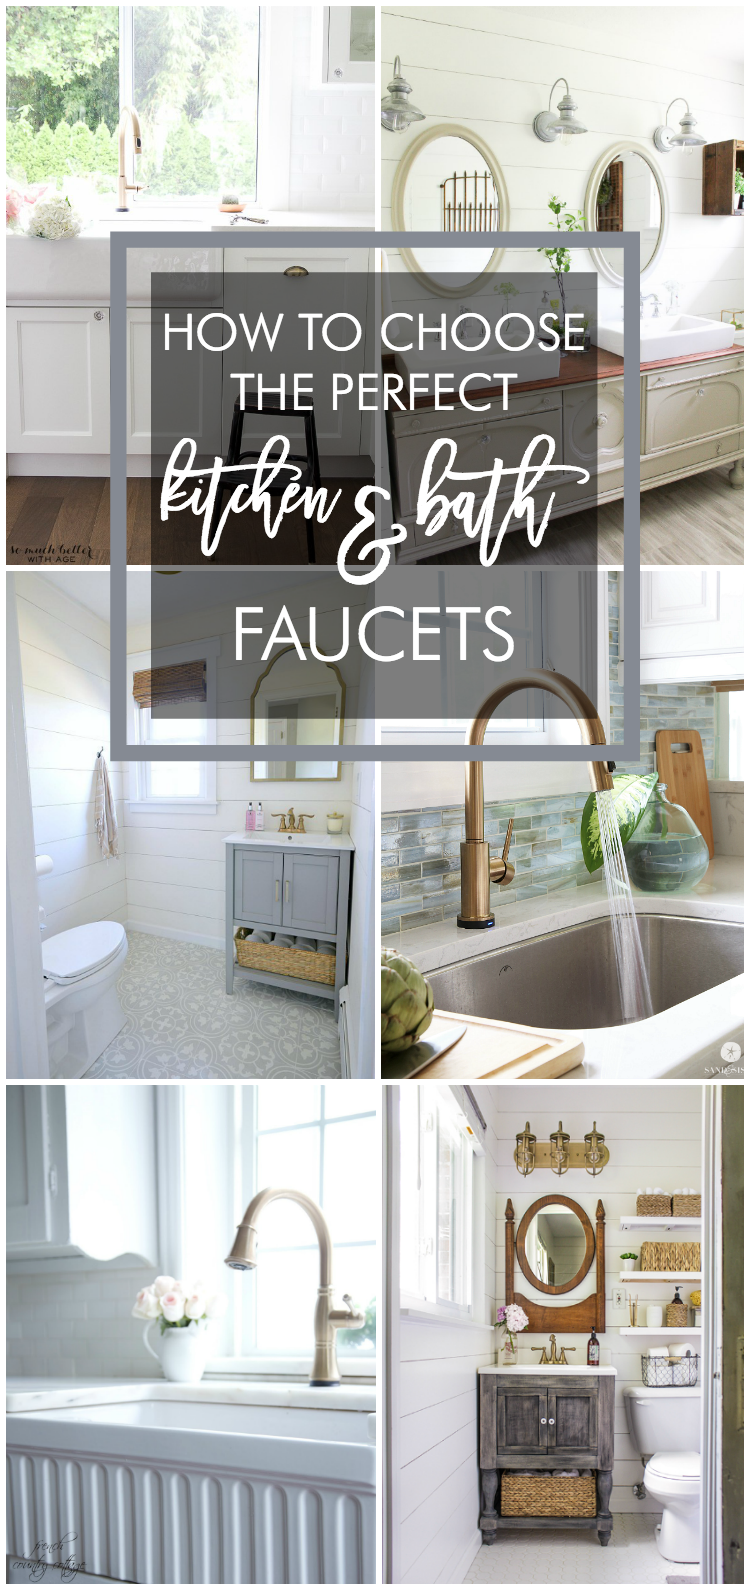 How to Choose the Perfect Kitchen and Bath Faucets - Home Stories A to Z